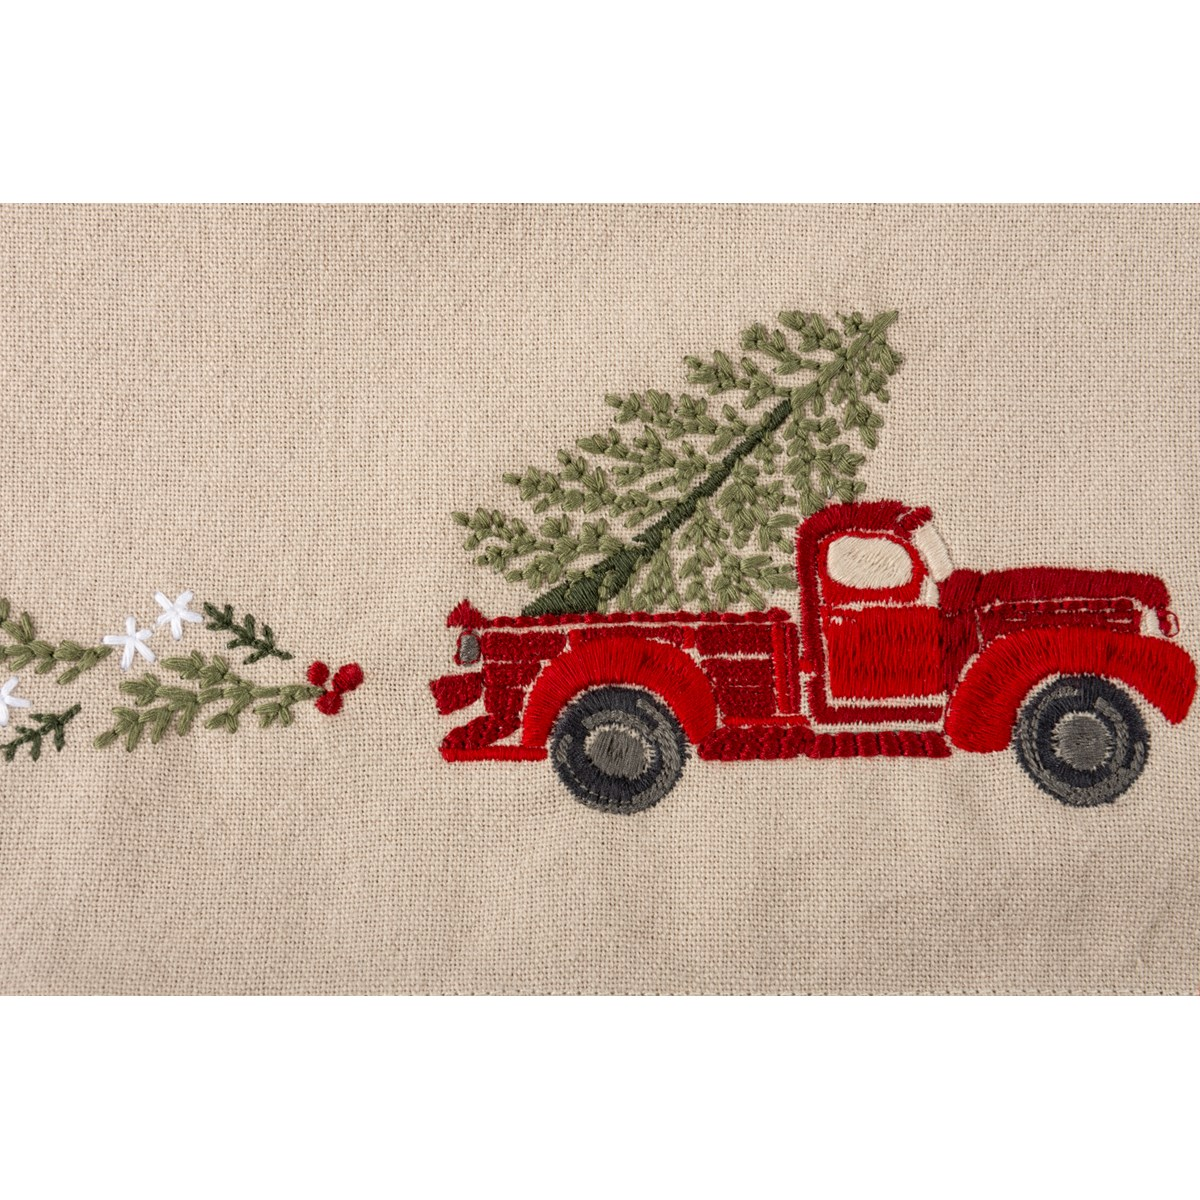 "Runner - Red Truck With Tree - 52"" x 15"" - Cotton, Linen"